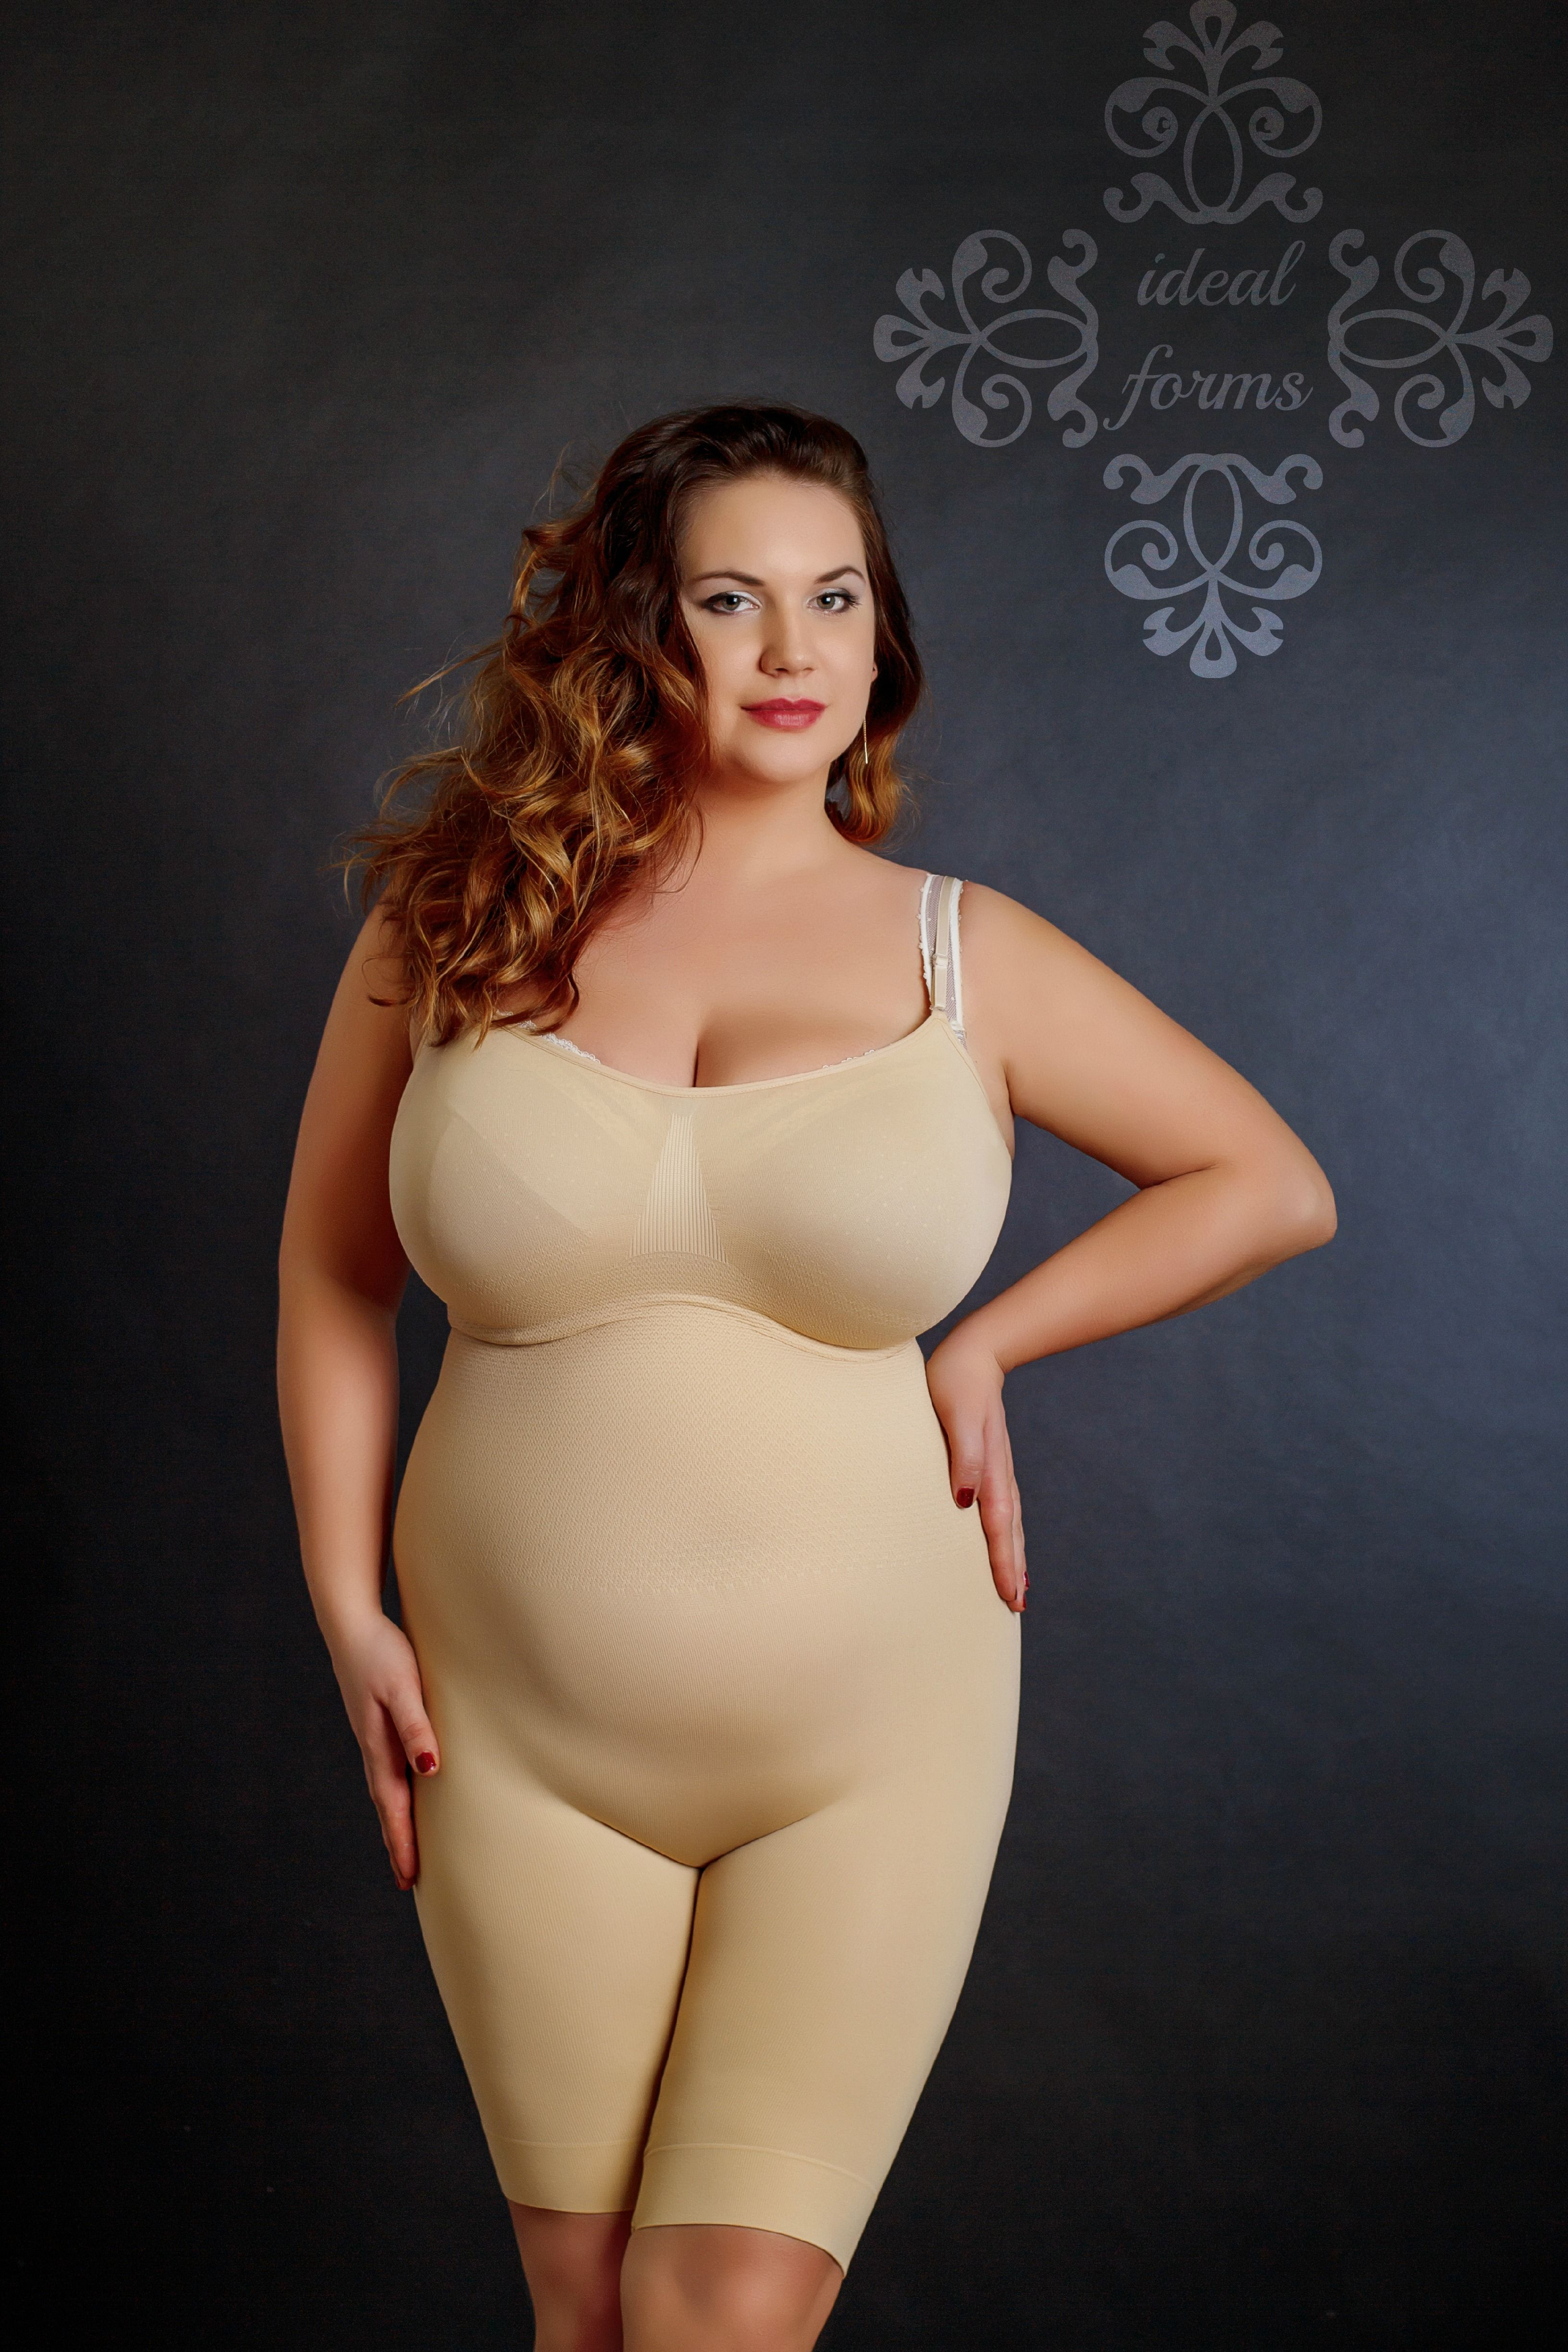 Top plus size dating sites